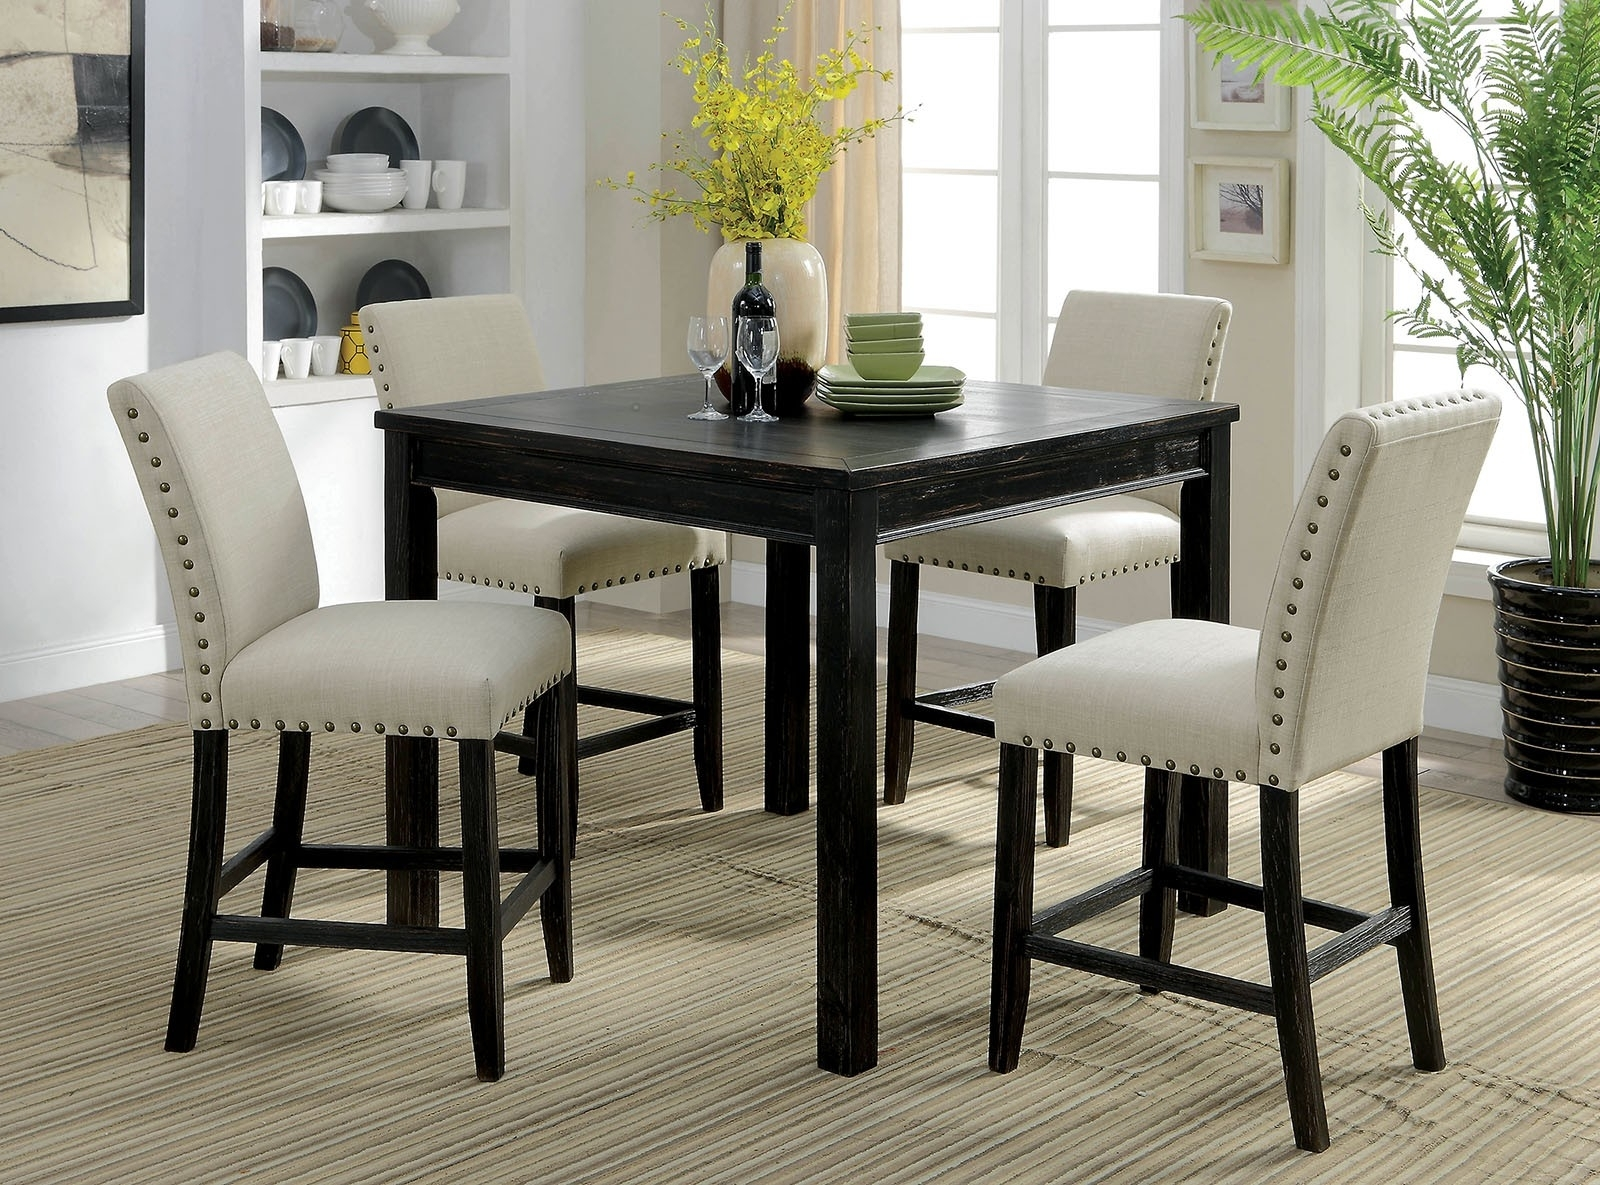 Dining Tables And Fabric Chairs Within Popular Kristie Rustic Style Antique Black Finish 5Pc Counter Height Dining (View 18 of 25)